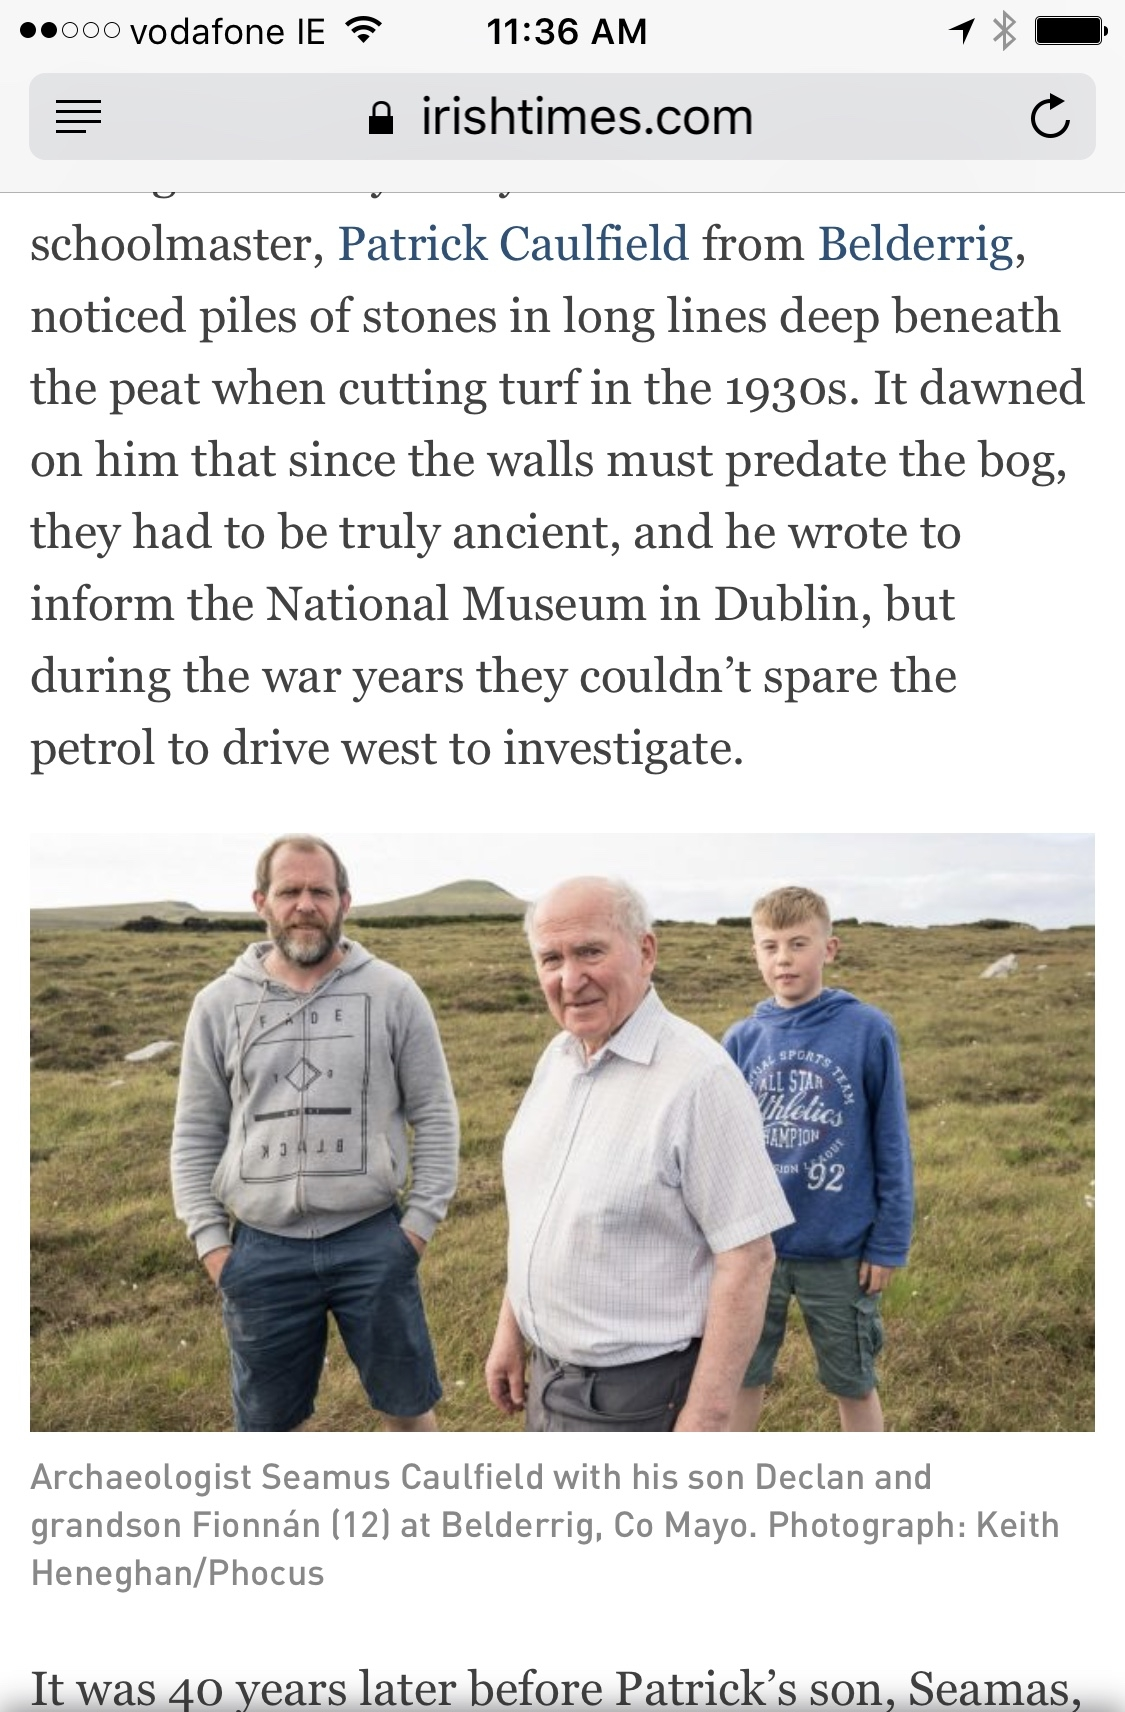 Featured in the Irish Times - While we werre in Belderrig, a fantastic article about Seamus and his family was published in the Irish Times. Be sure to check it out!